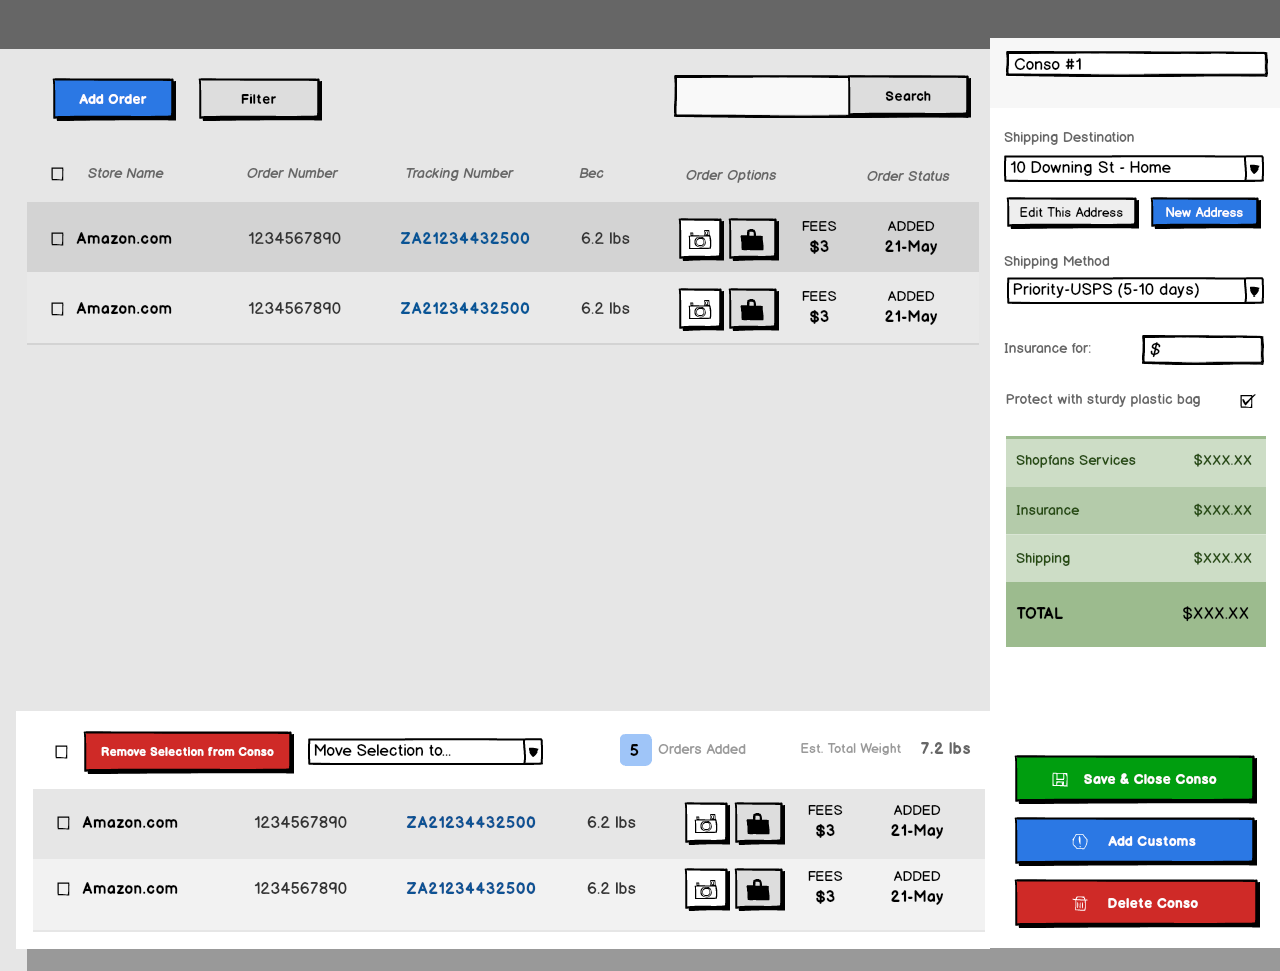 Purchase Page Shopfans Desktop Web App Wireframe